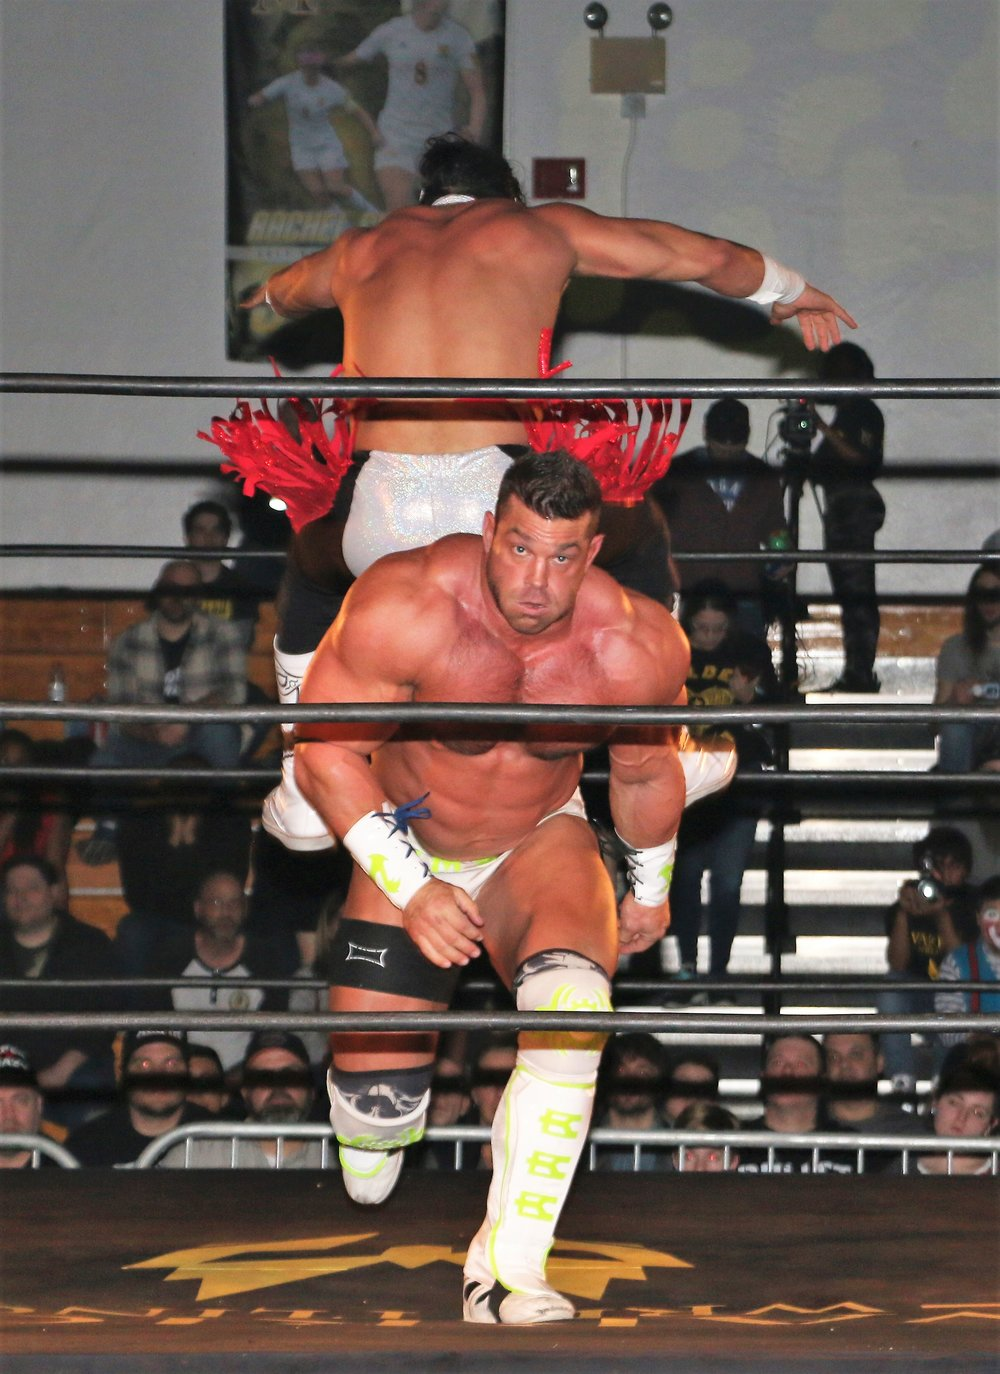 Brian Cage runs toward the ropes after Bandido performs a leapfrog.